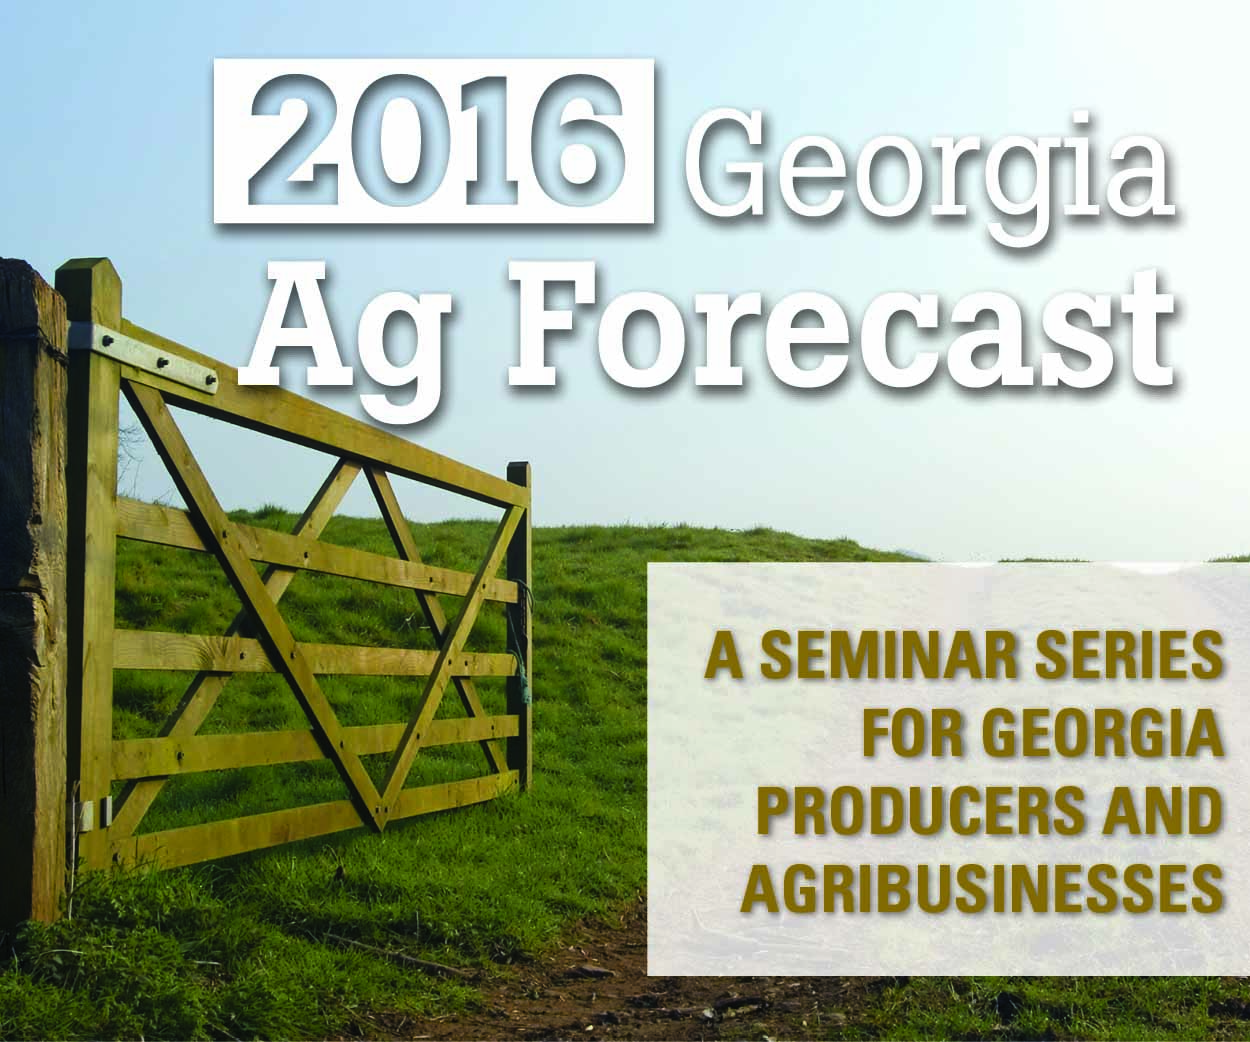 The Jan. 22 Ag Forecast scheduled for Unicoi State Park has been canceled due to weather. It will be rescheduled soon.